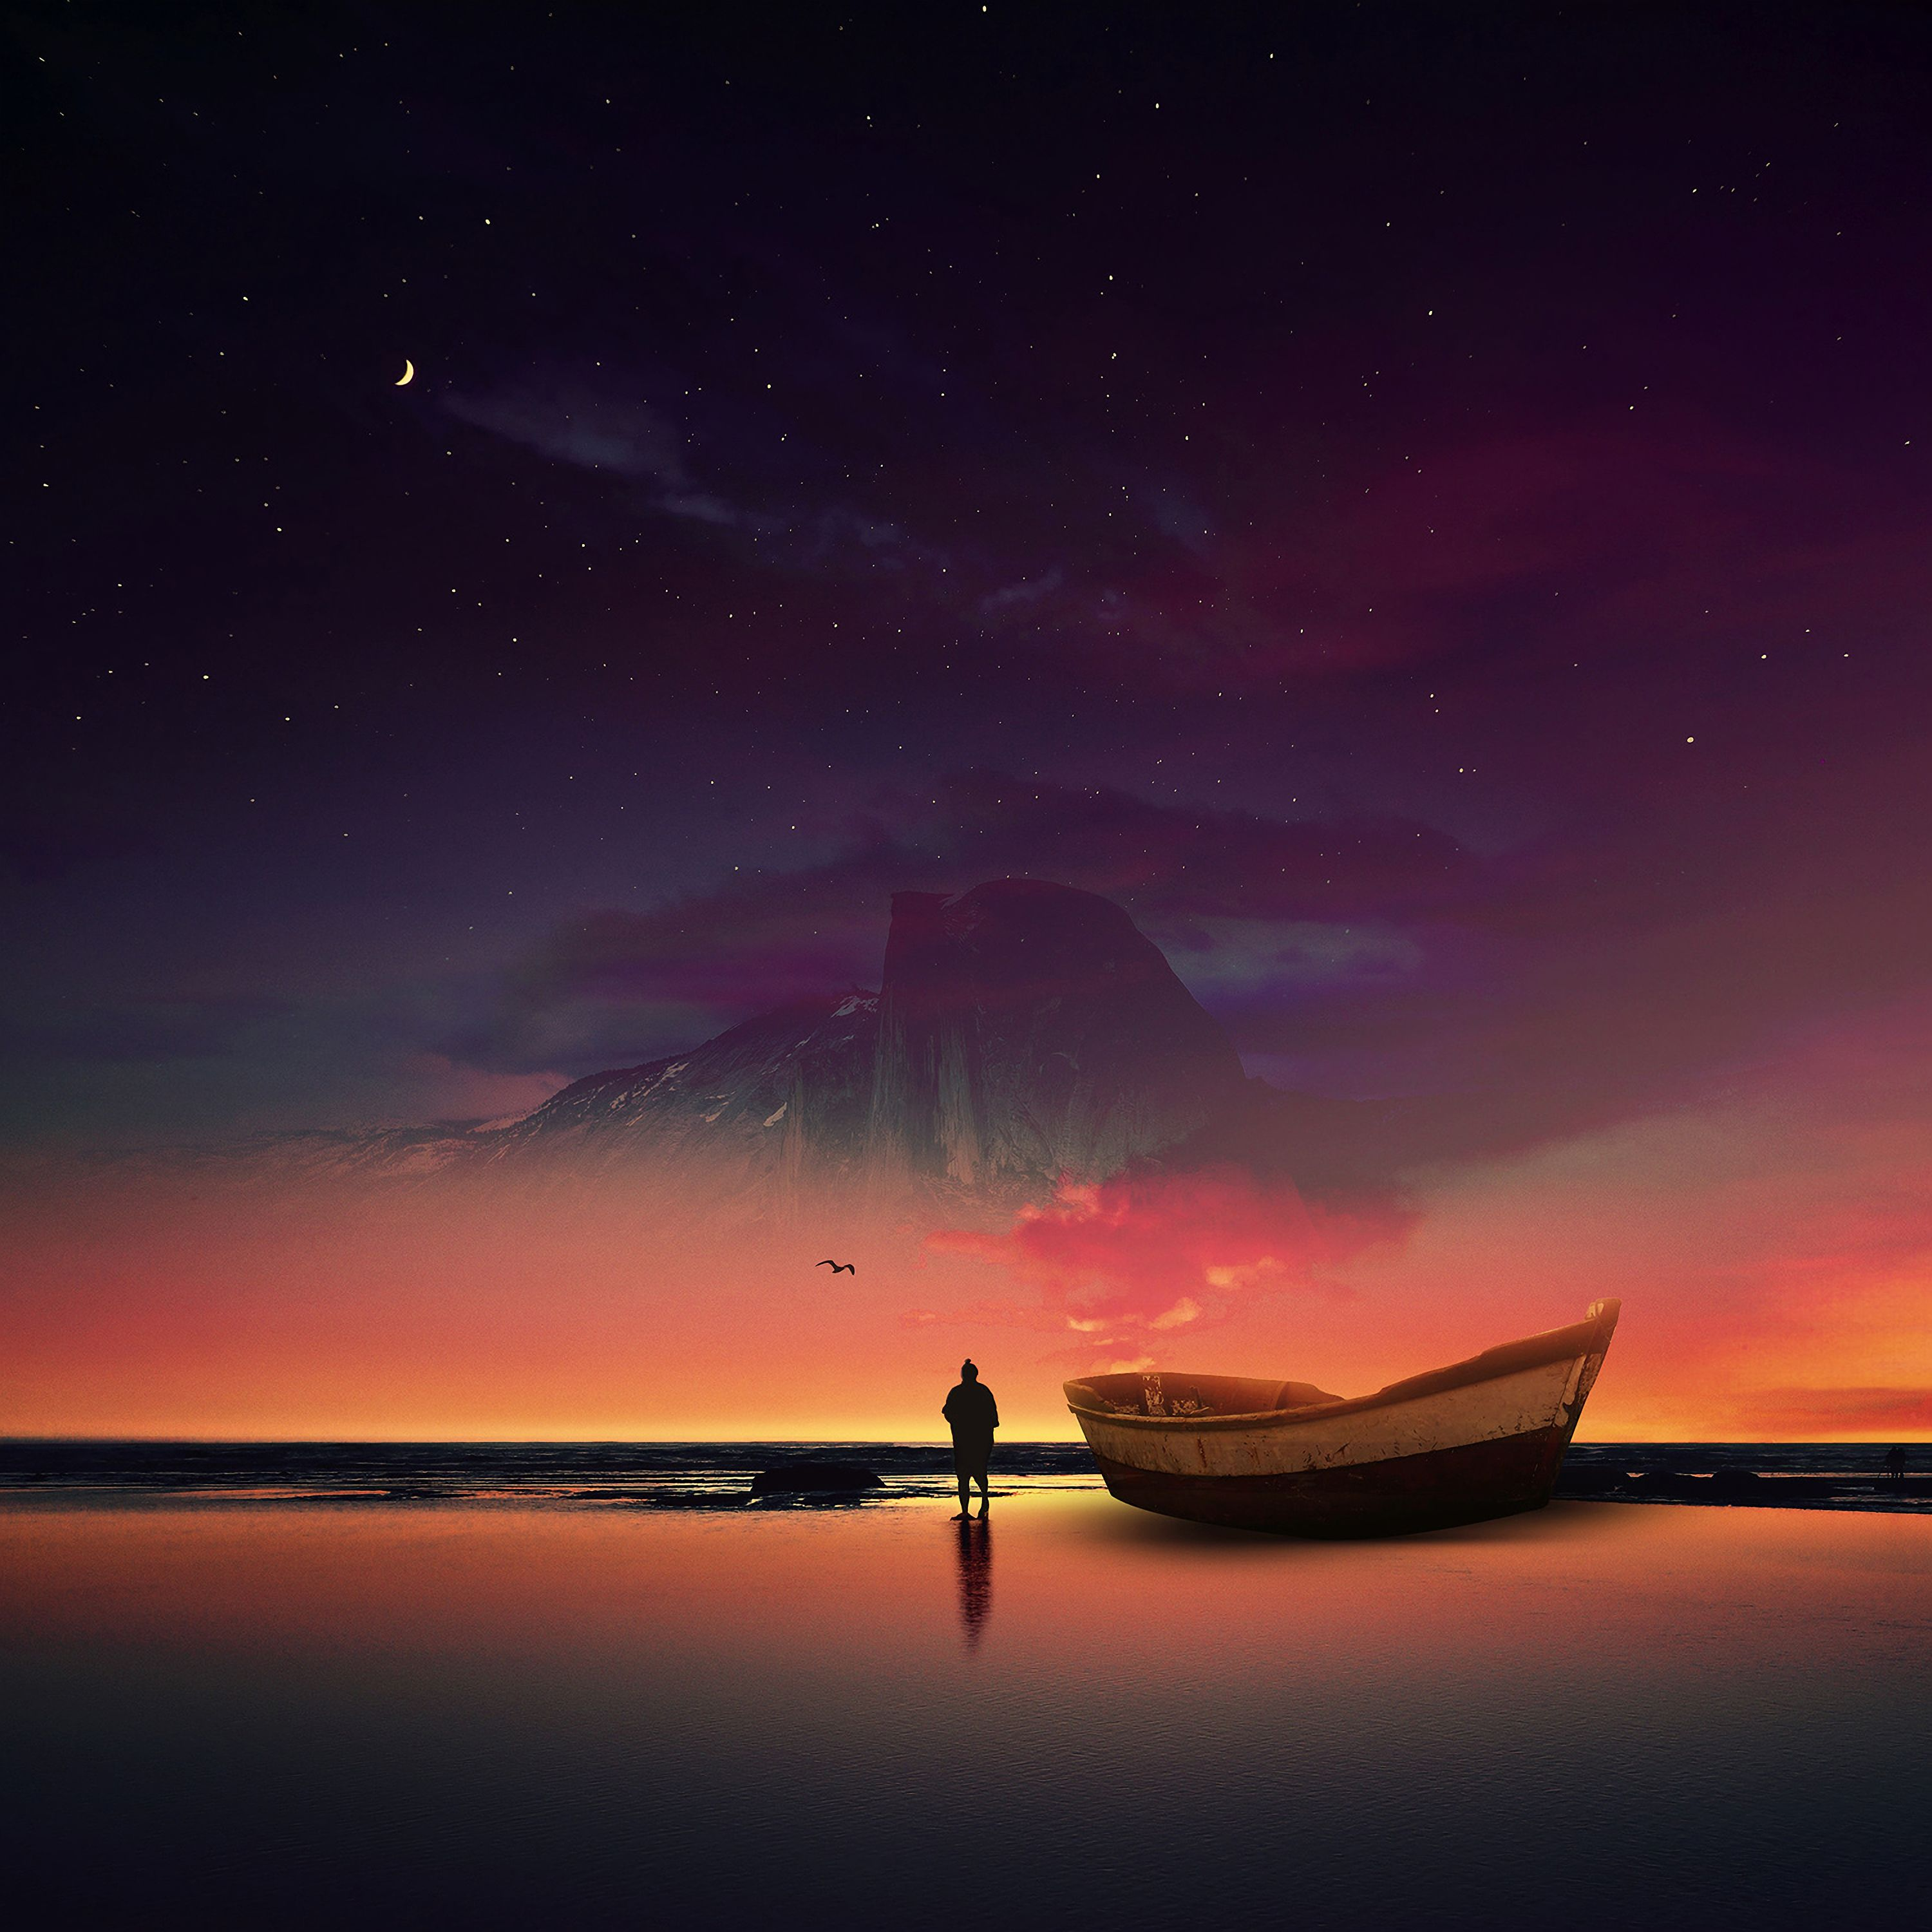 155898 Screensavers and Wallpapers Boat for phone. Download Night, Shore, Bank, Dark, Silhouette, Ocean, Starry Sky, Boat, Photoshop pictures for free